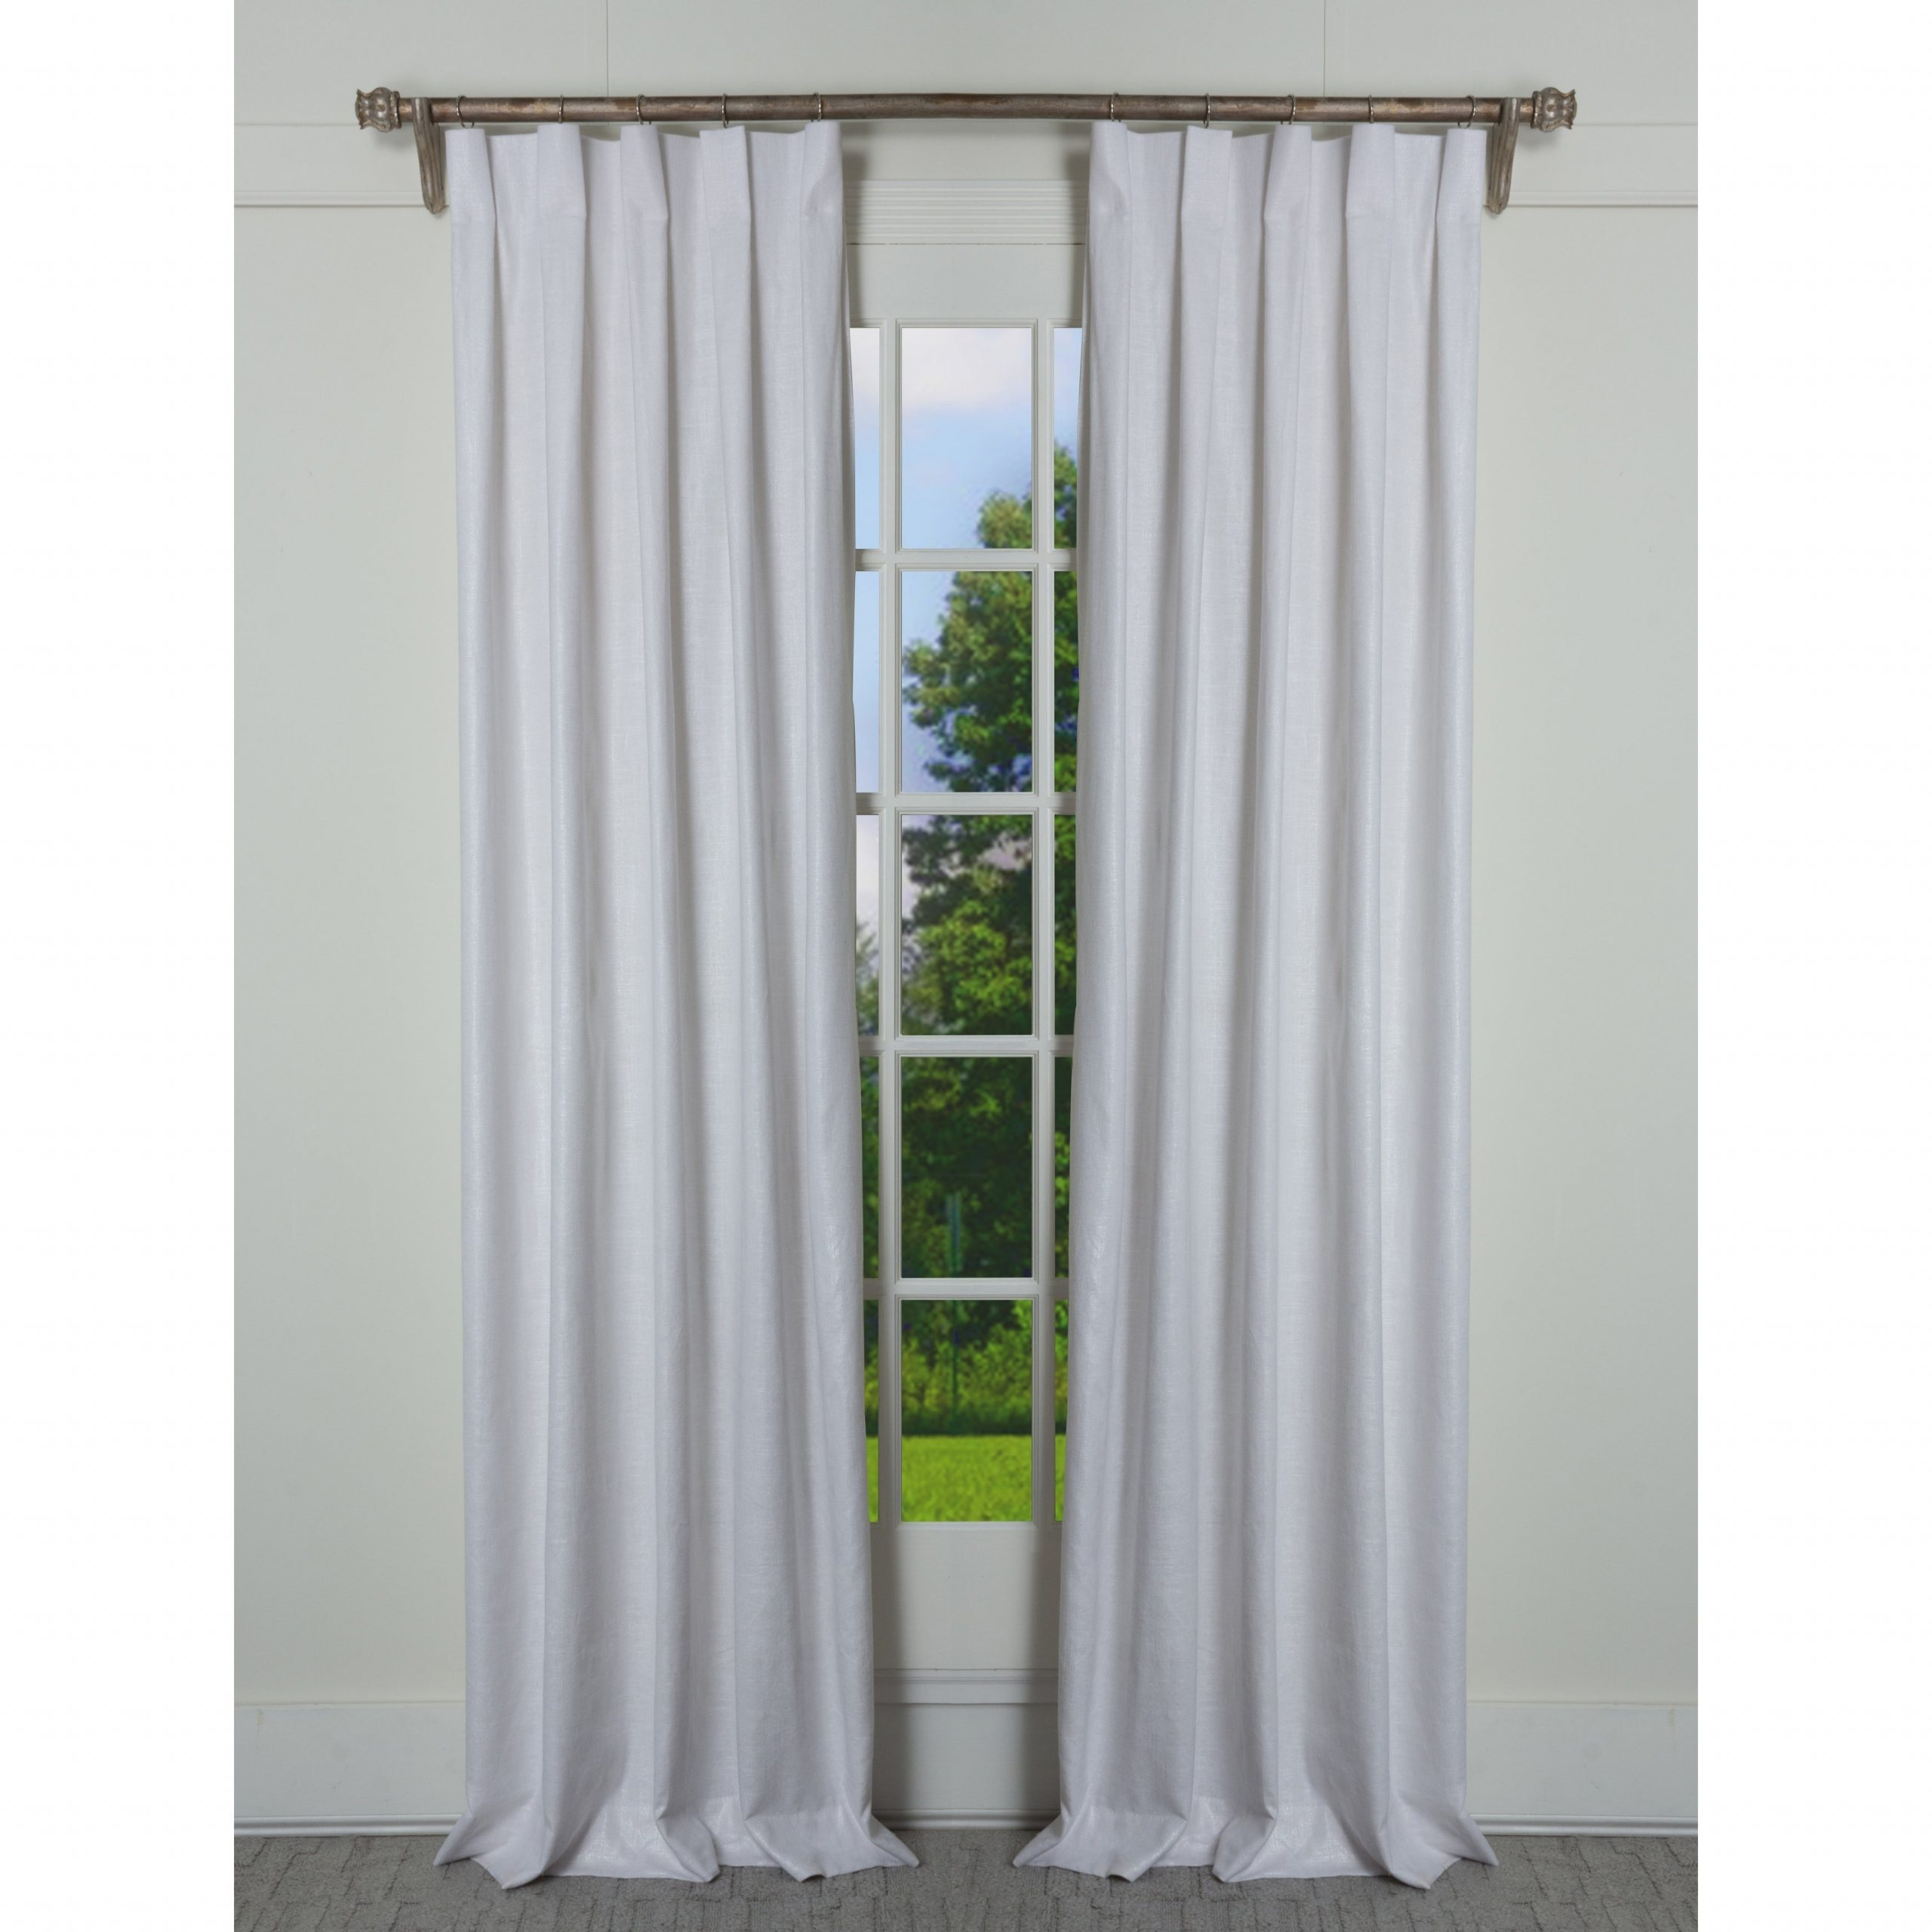 Most Recent Porch & Den Easystreet Metallic Cotton Box Pleated Single Curtain Panel Throughout Solid Cotton Pleated Curtains (View 11 of 20)